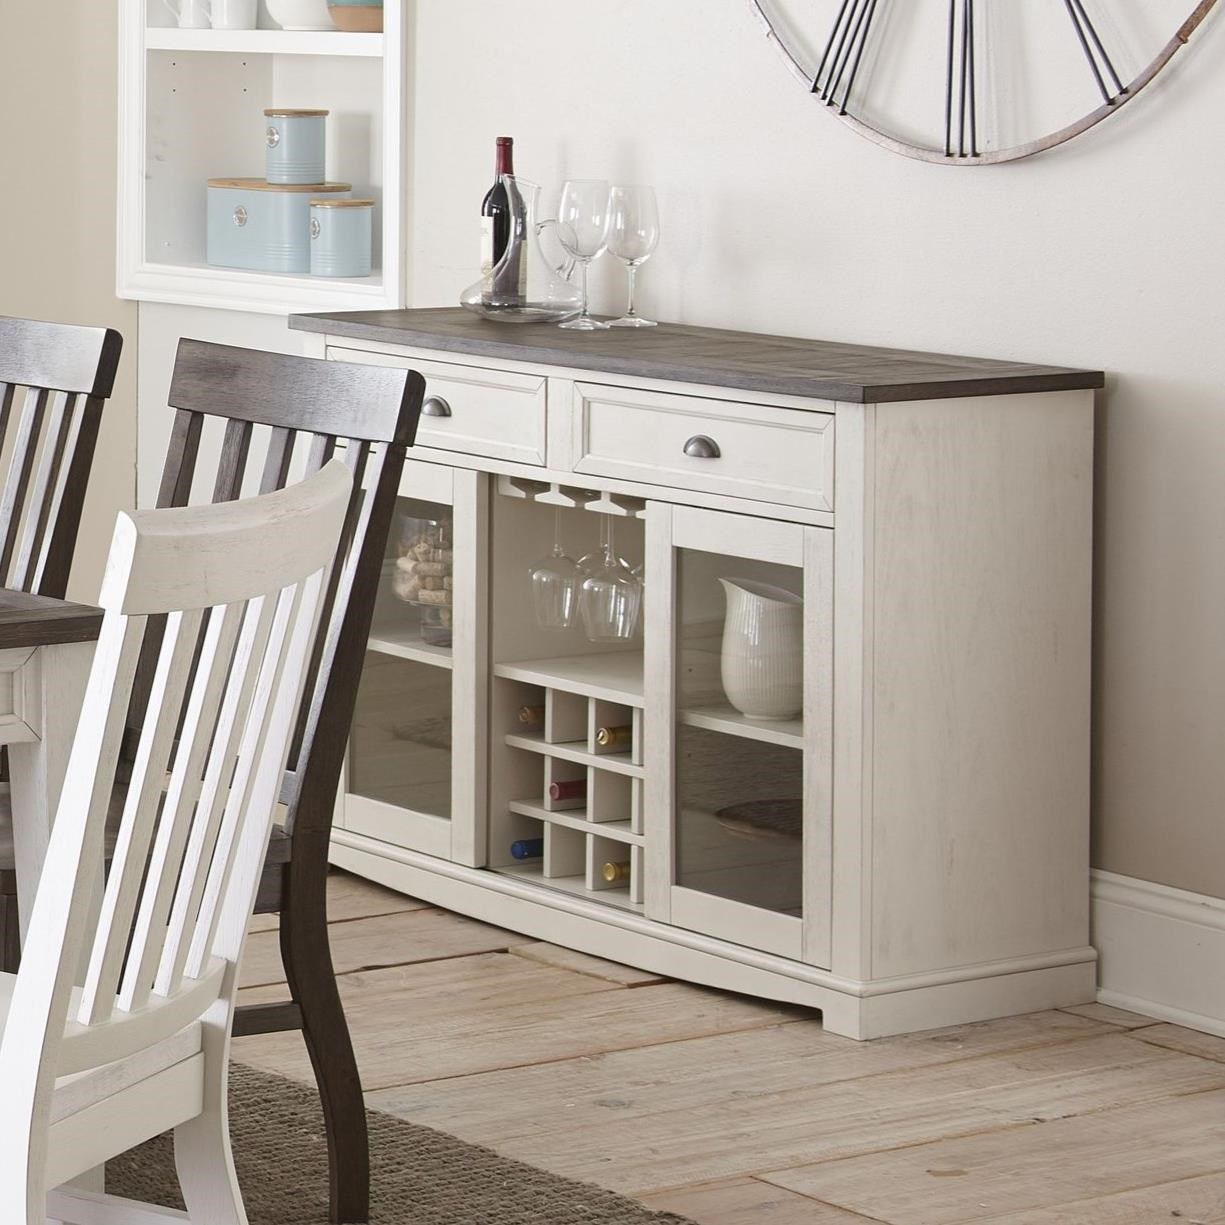 Cayla Server by Steve Silver at Northeast Factory Direct